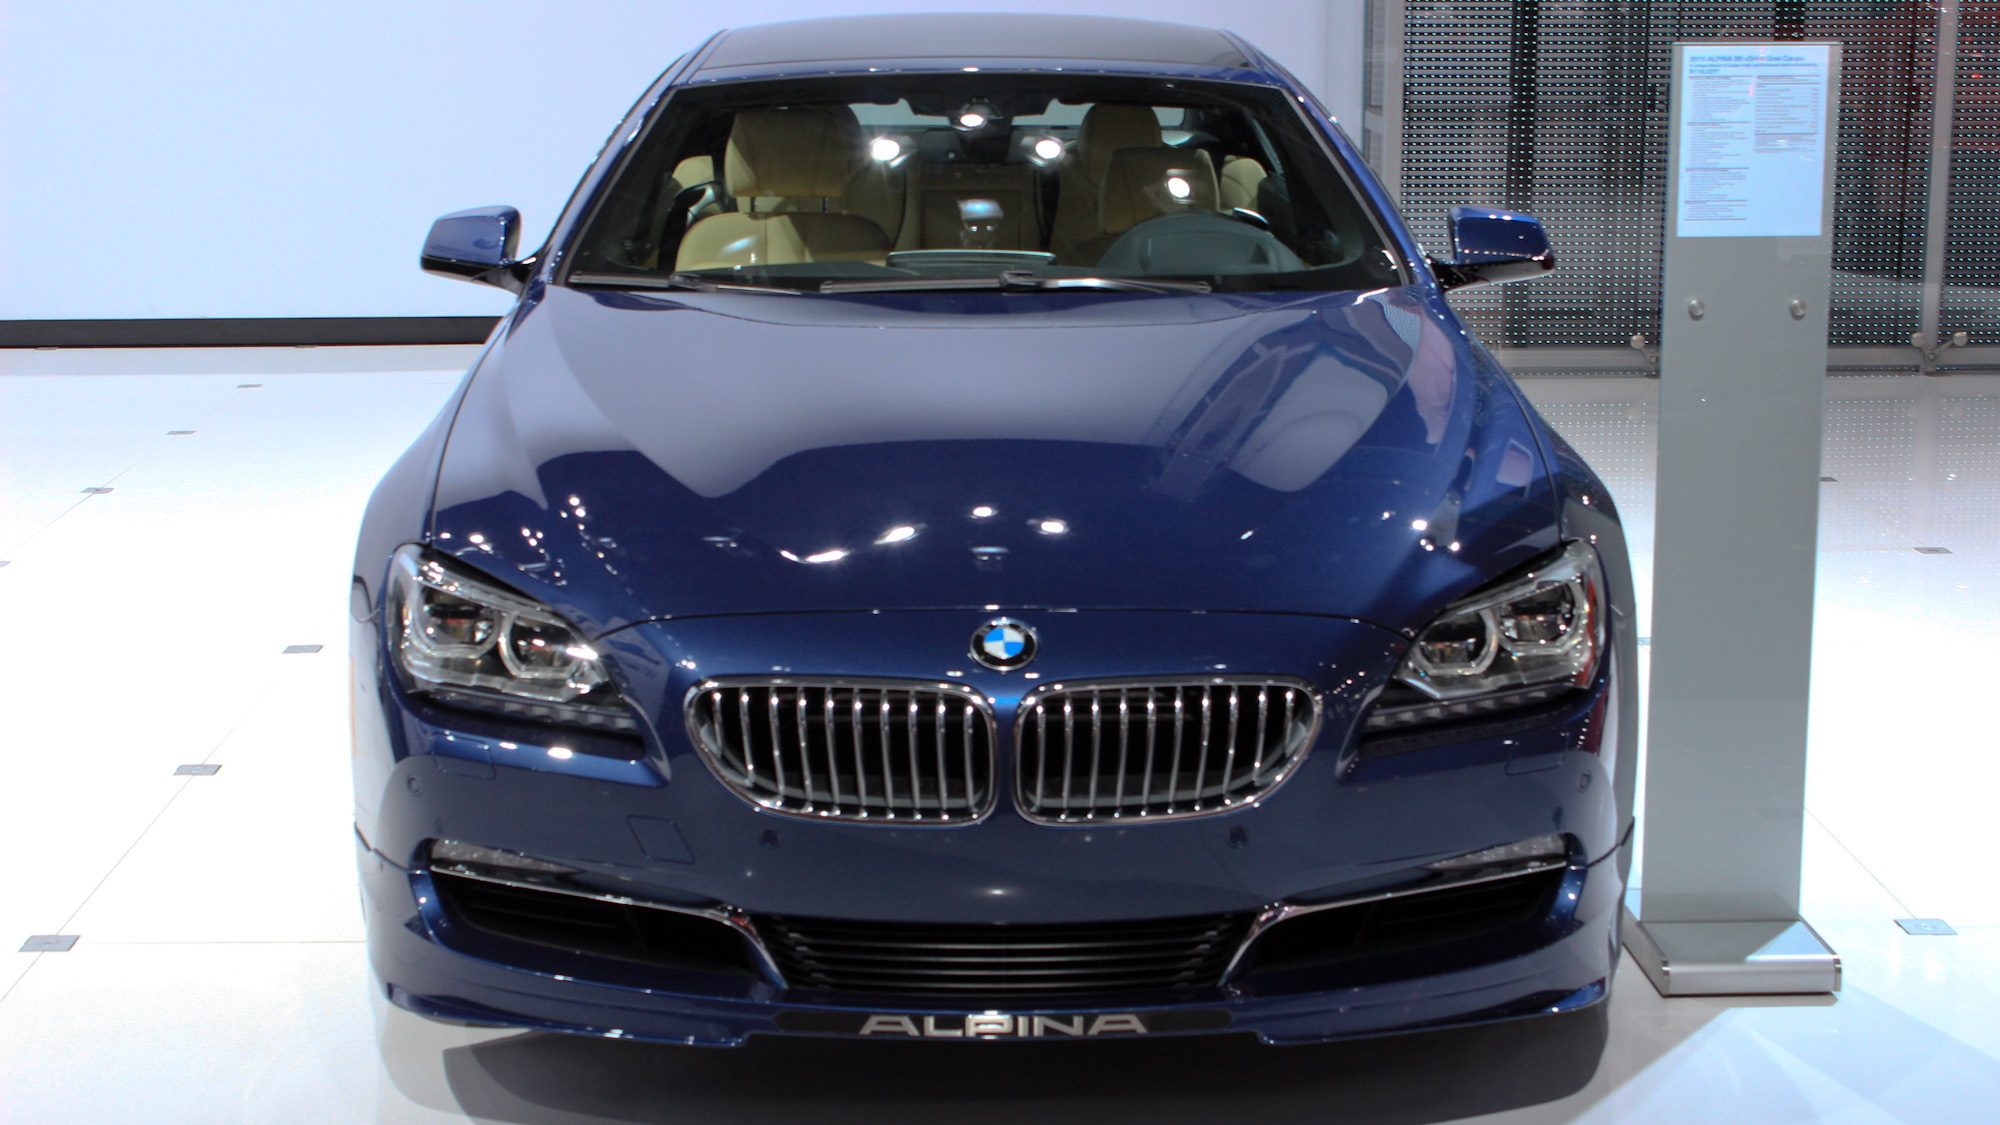 2015 BMW Alpina B6 xDrive Gran Coupe, 2014 New York Auto Show